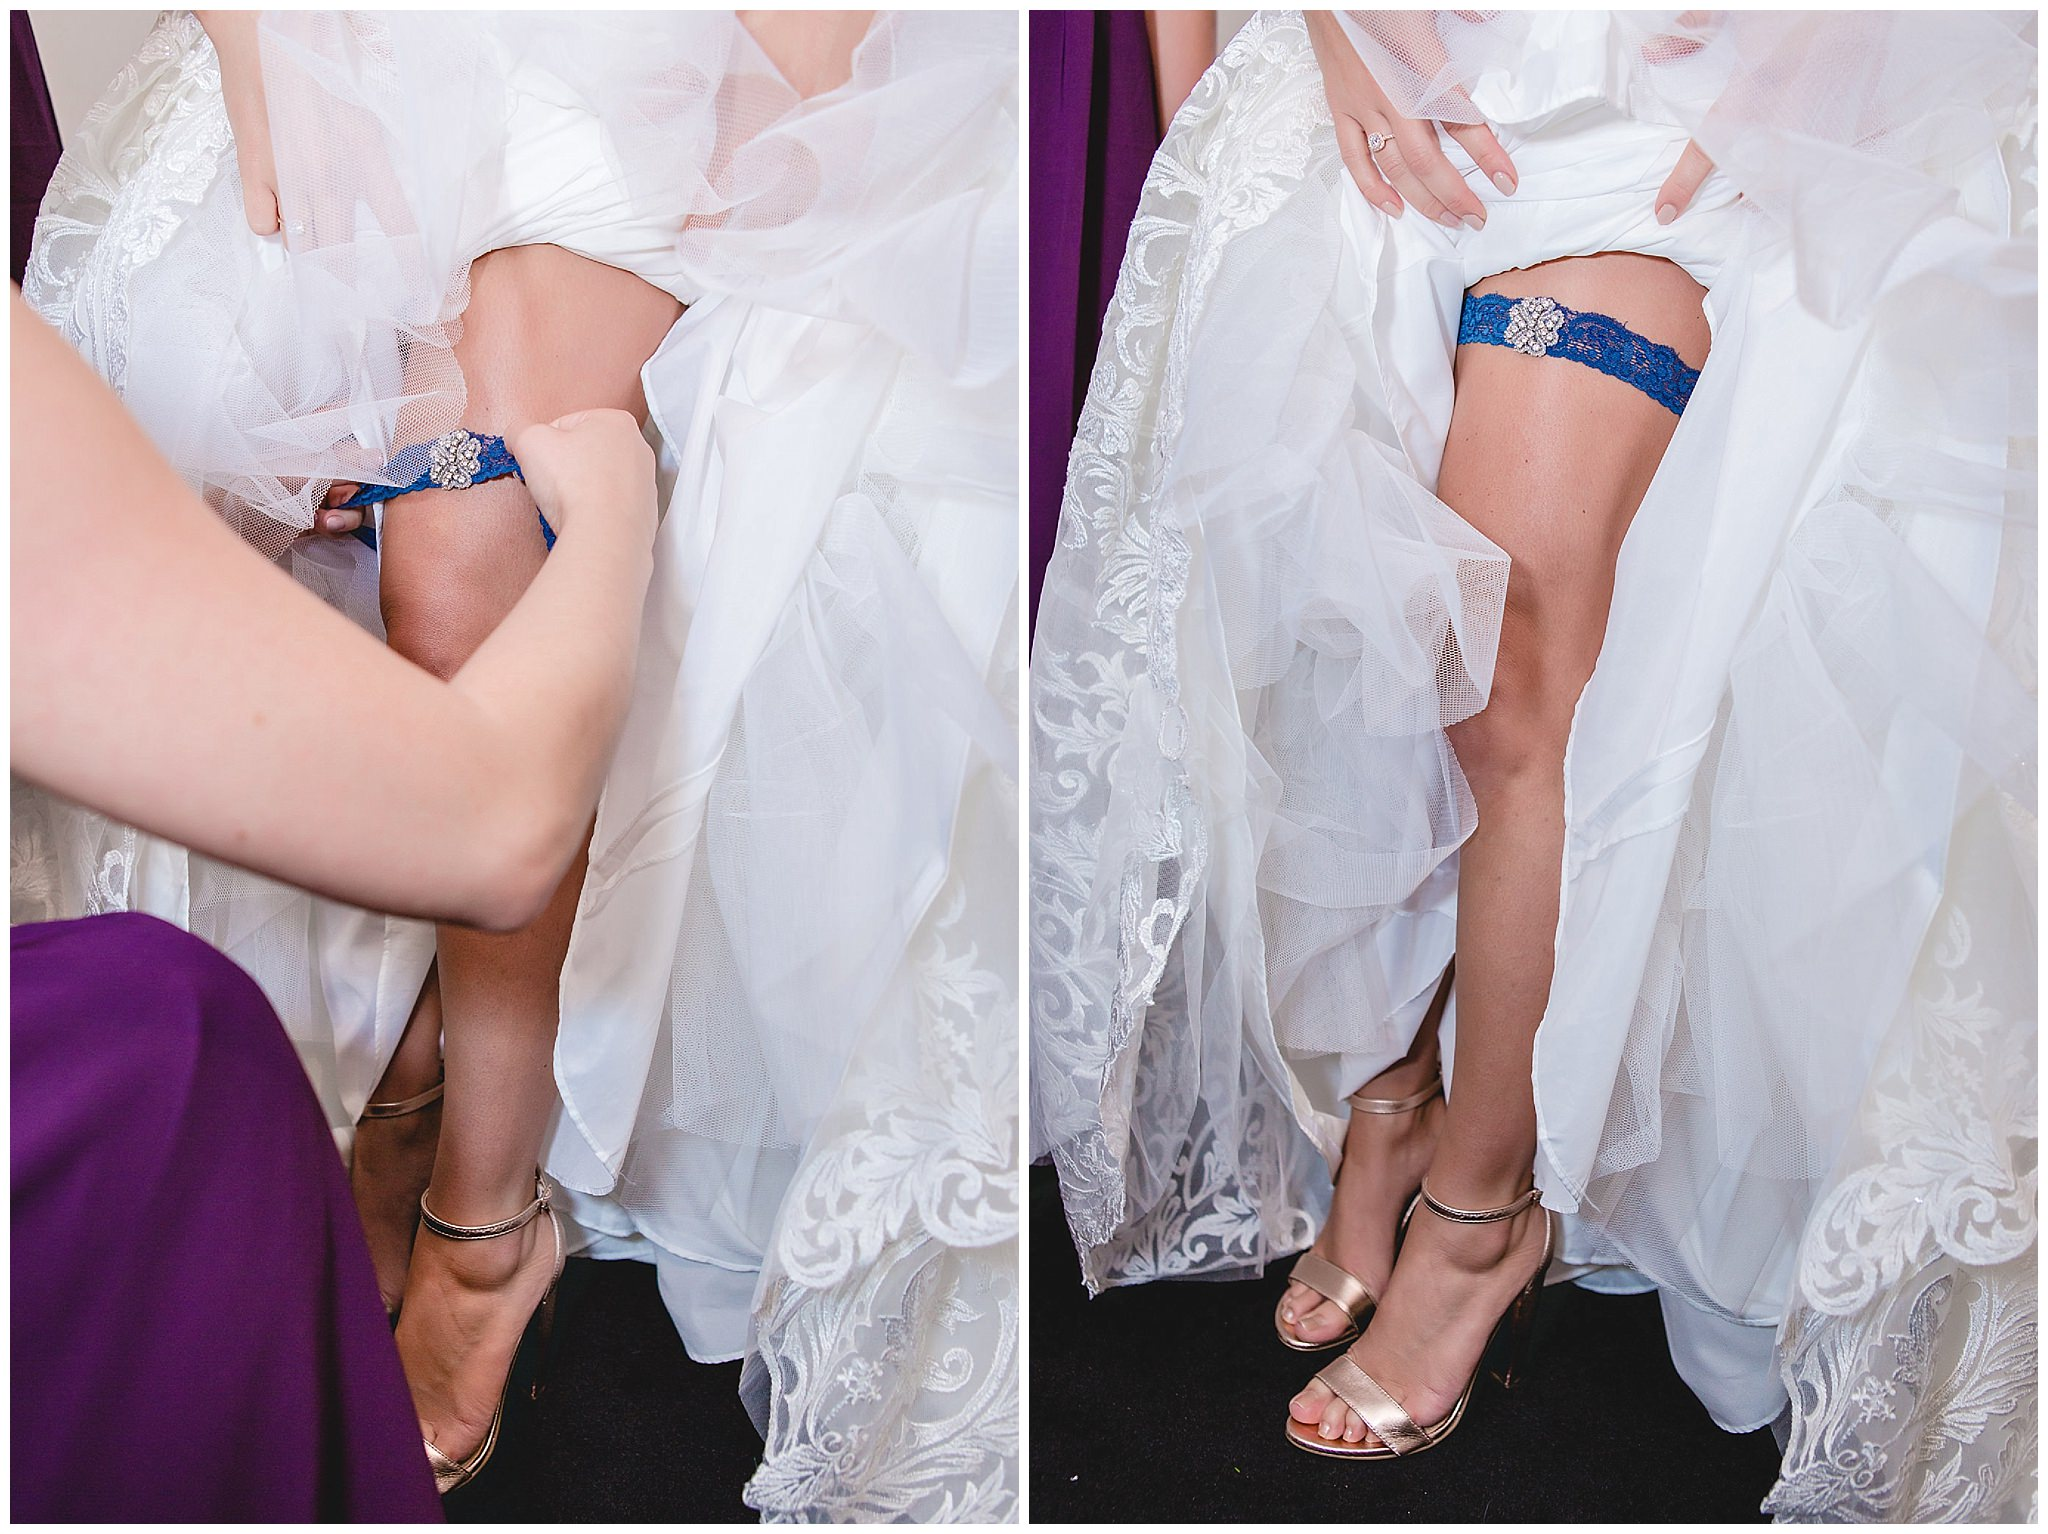 Bridesmaid puts the garter on the bride at White Barn